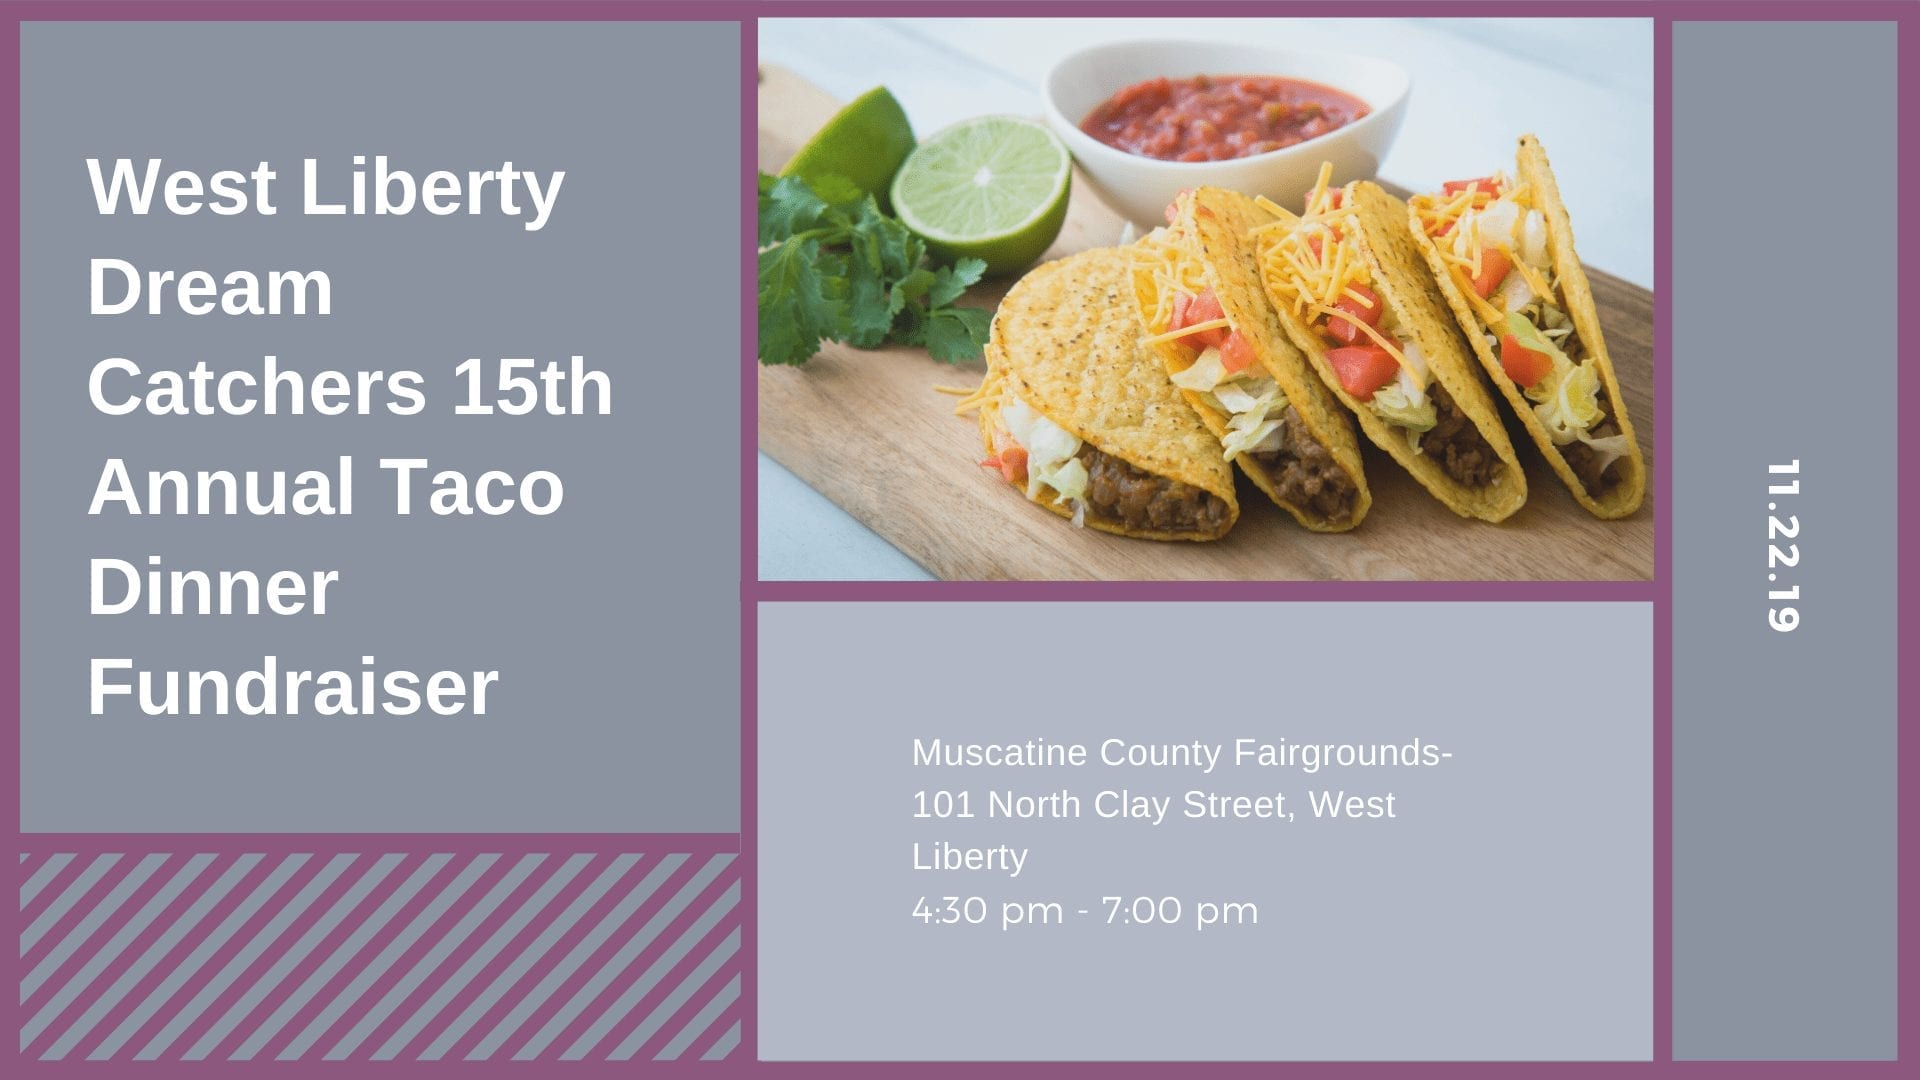 West Liberty Dream Catchers 15th Annual Taco Dinner Fundraiser